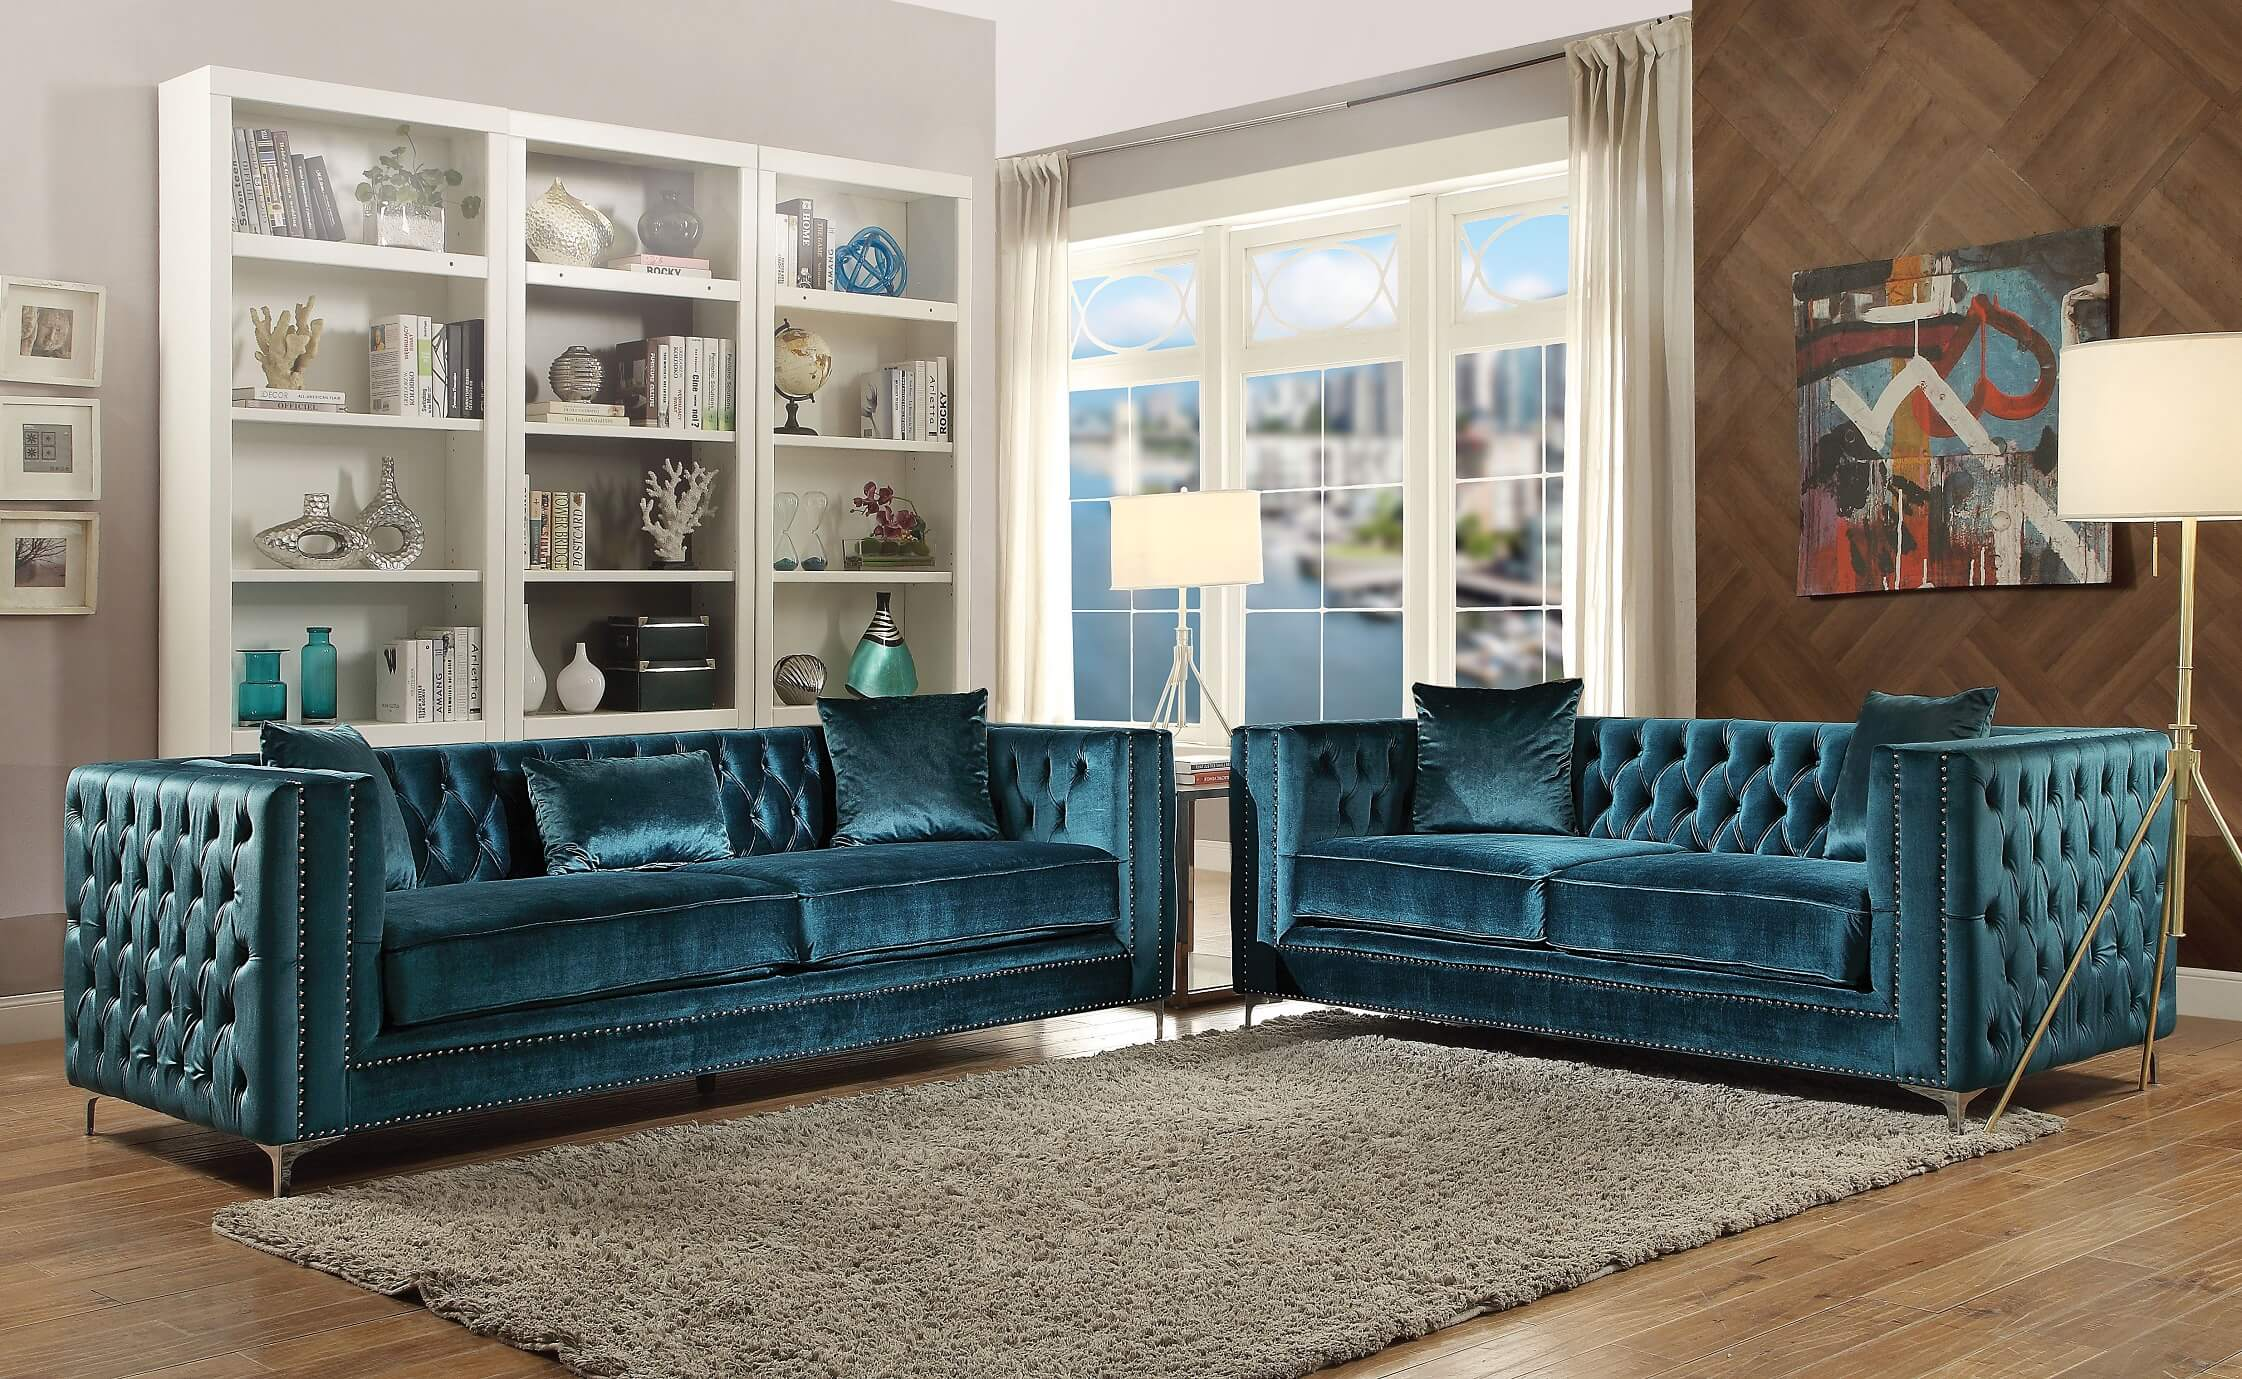 Superb Gillian Dark Teal Velvet 2 Piece Sofa Set Inzonedesignstudio Interior Chair Design Inzonedesignstudiocom